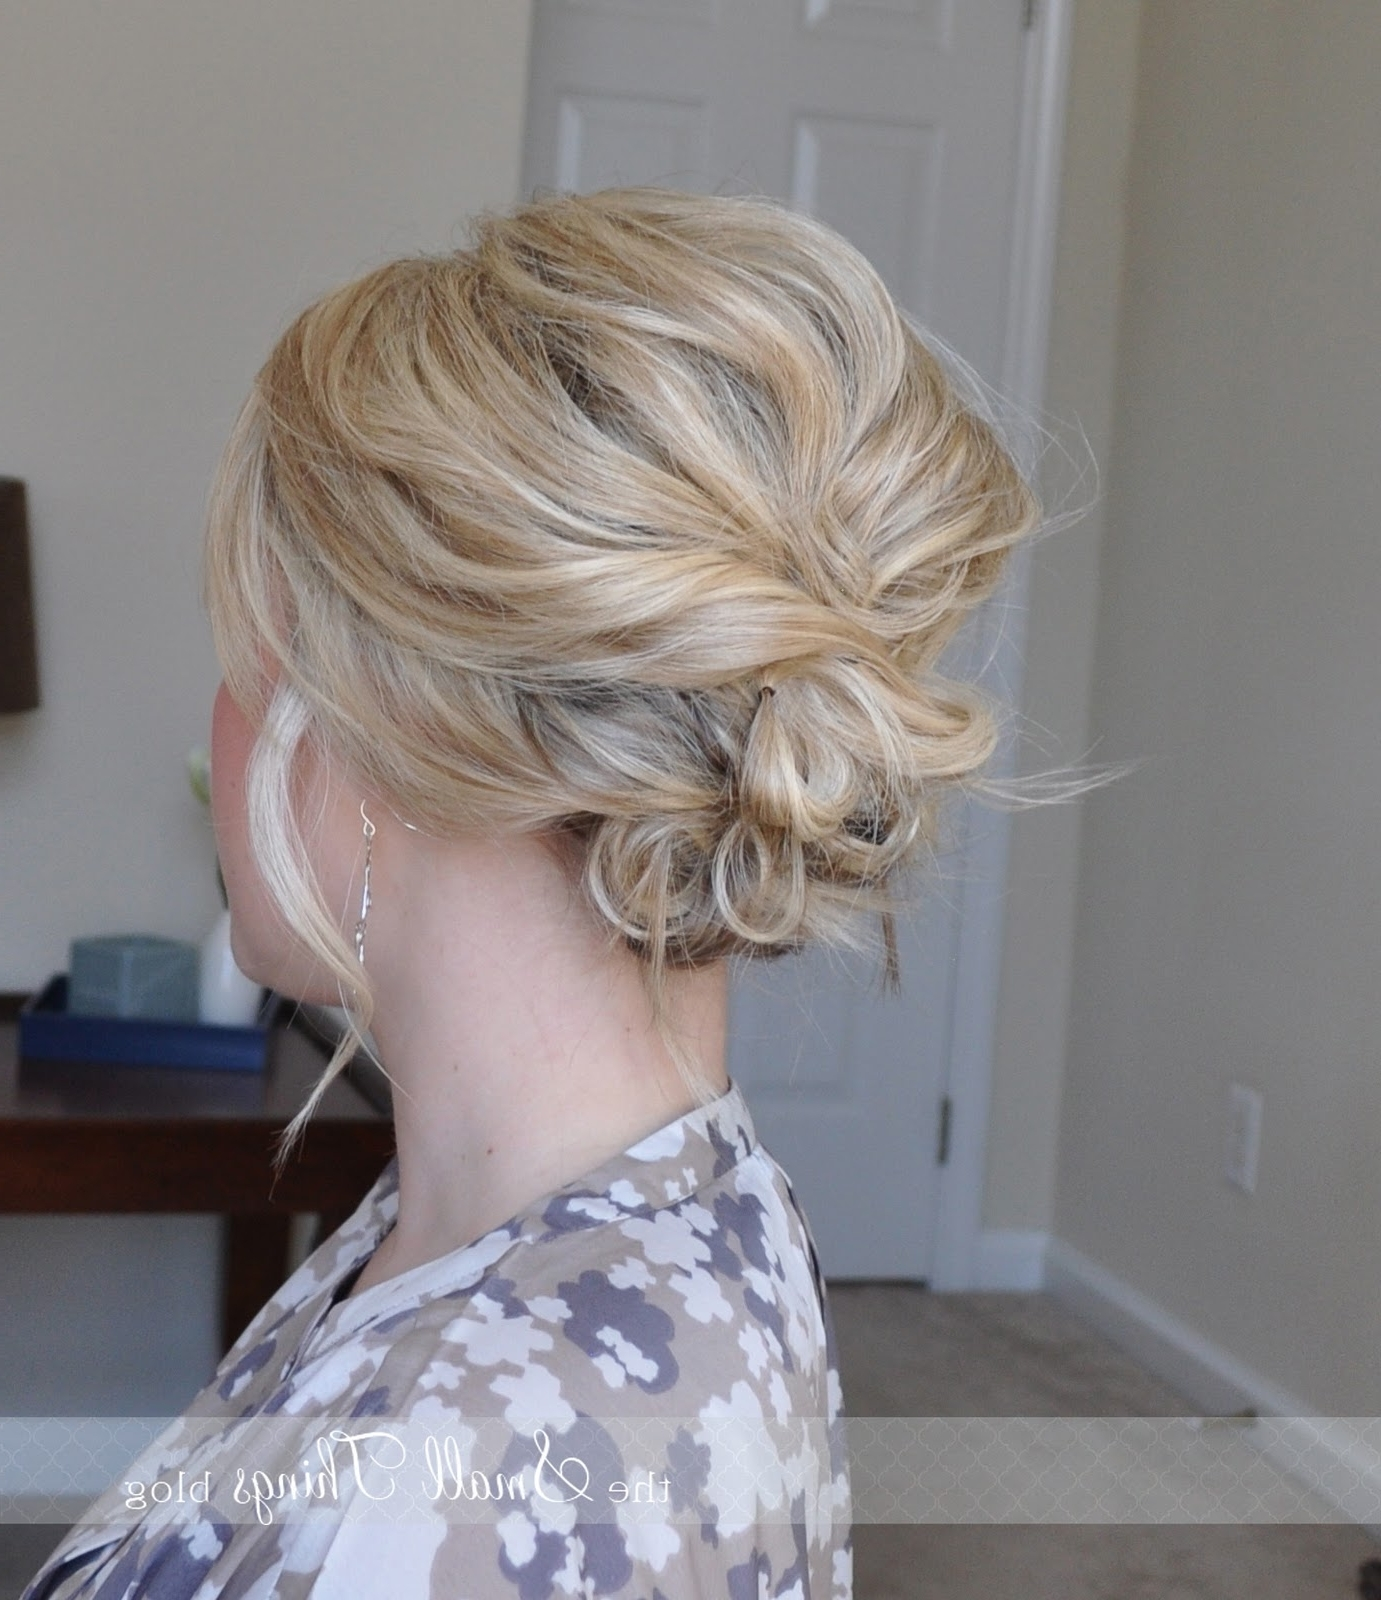 Trendy Diy Wedding Hairstyles For Medium Length Hair For Beach Wedding Hairstyles For Medium Length Hair – Hairstyle For (View 14 of 15)